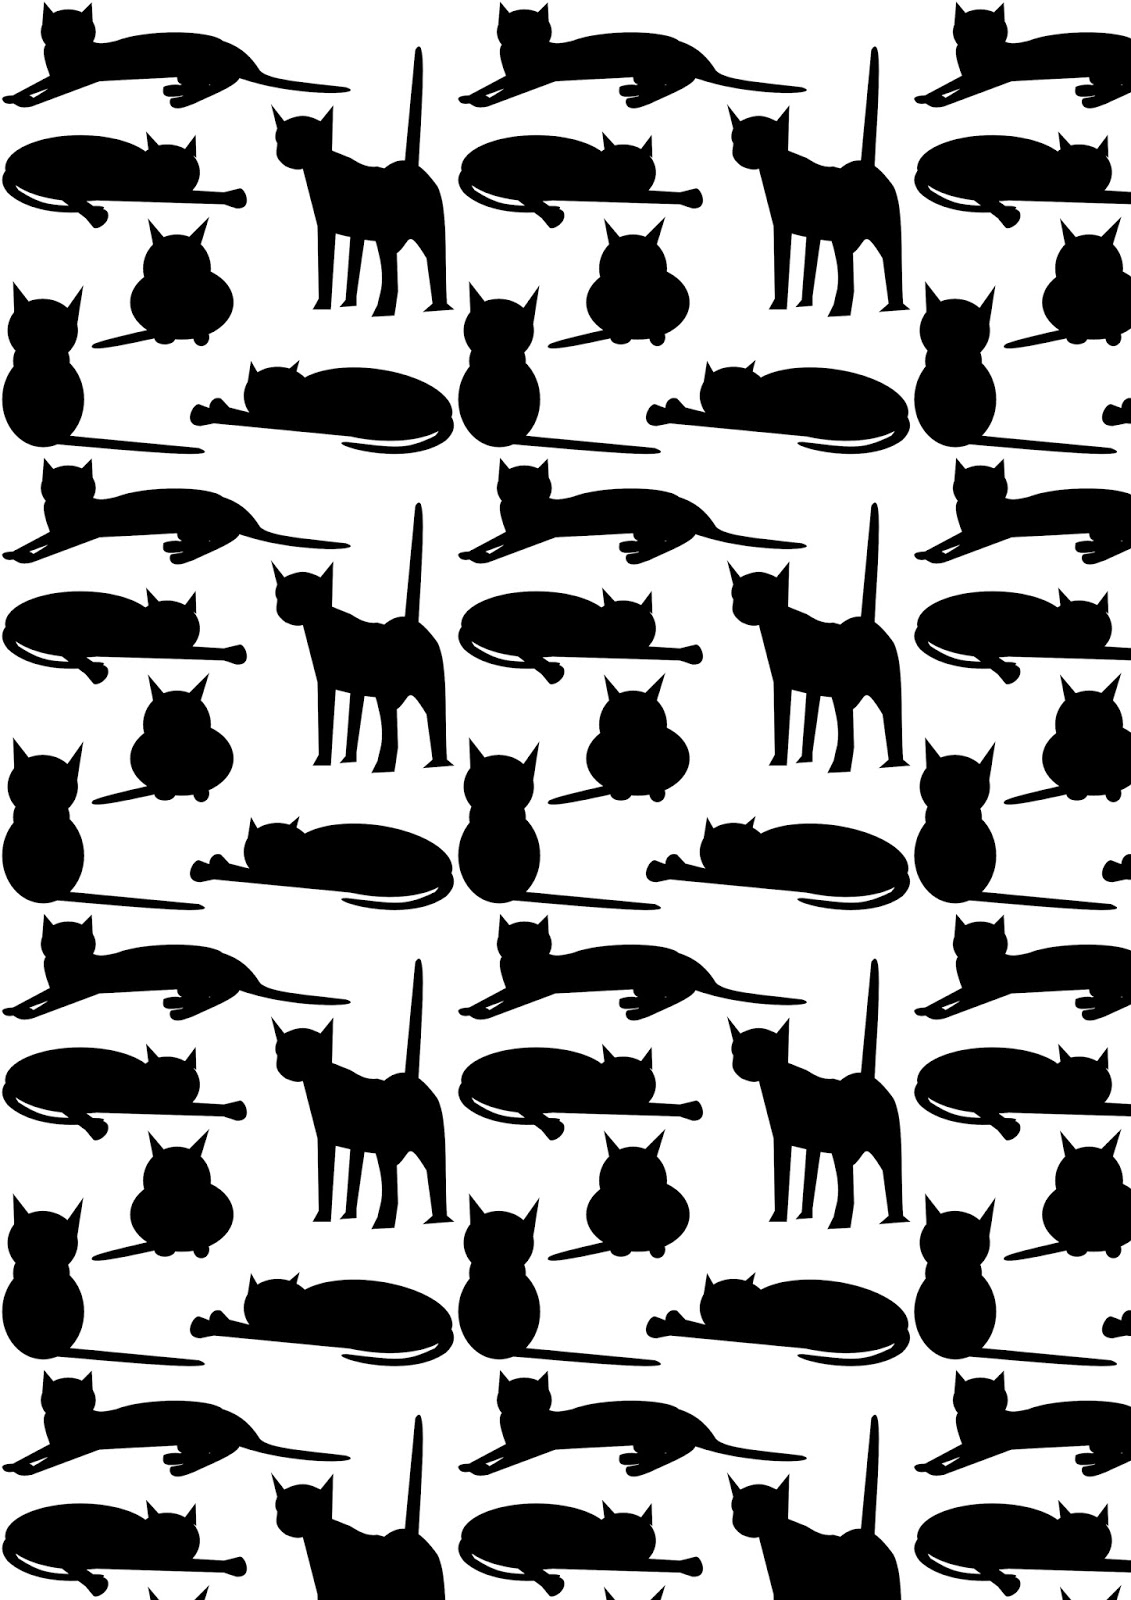 Free Cat Images: Free digital cat pattern - black and ...